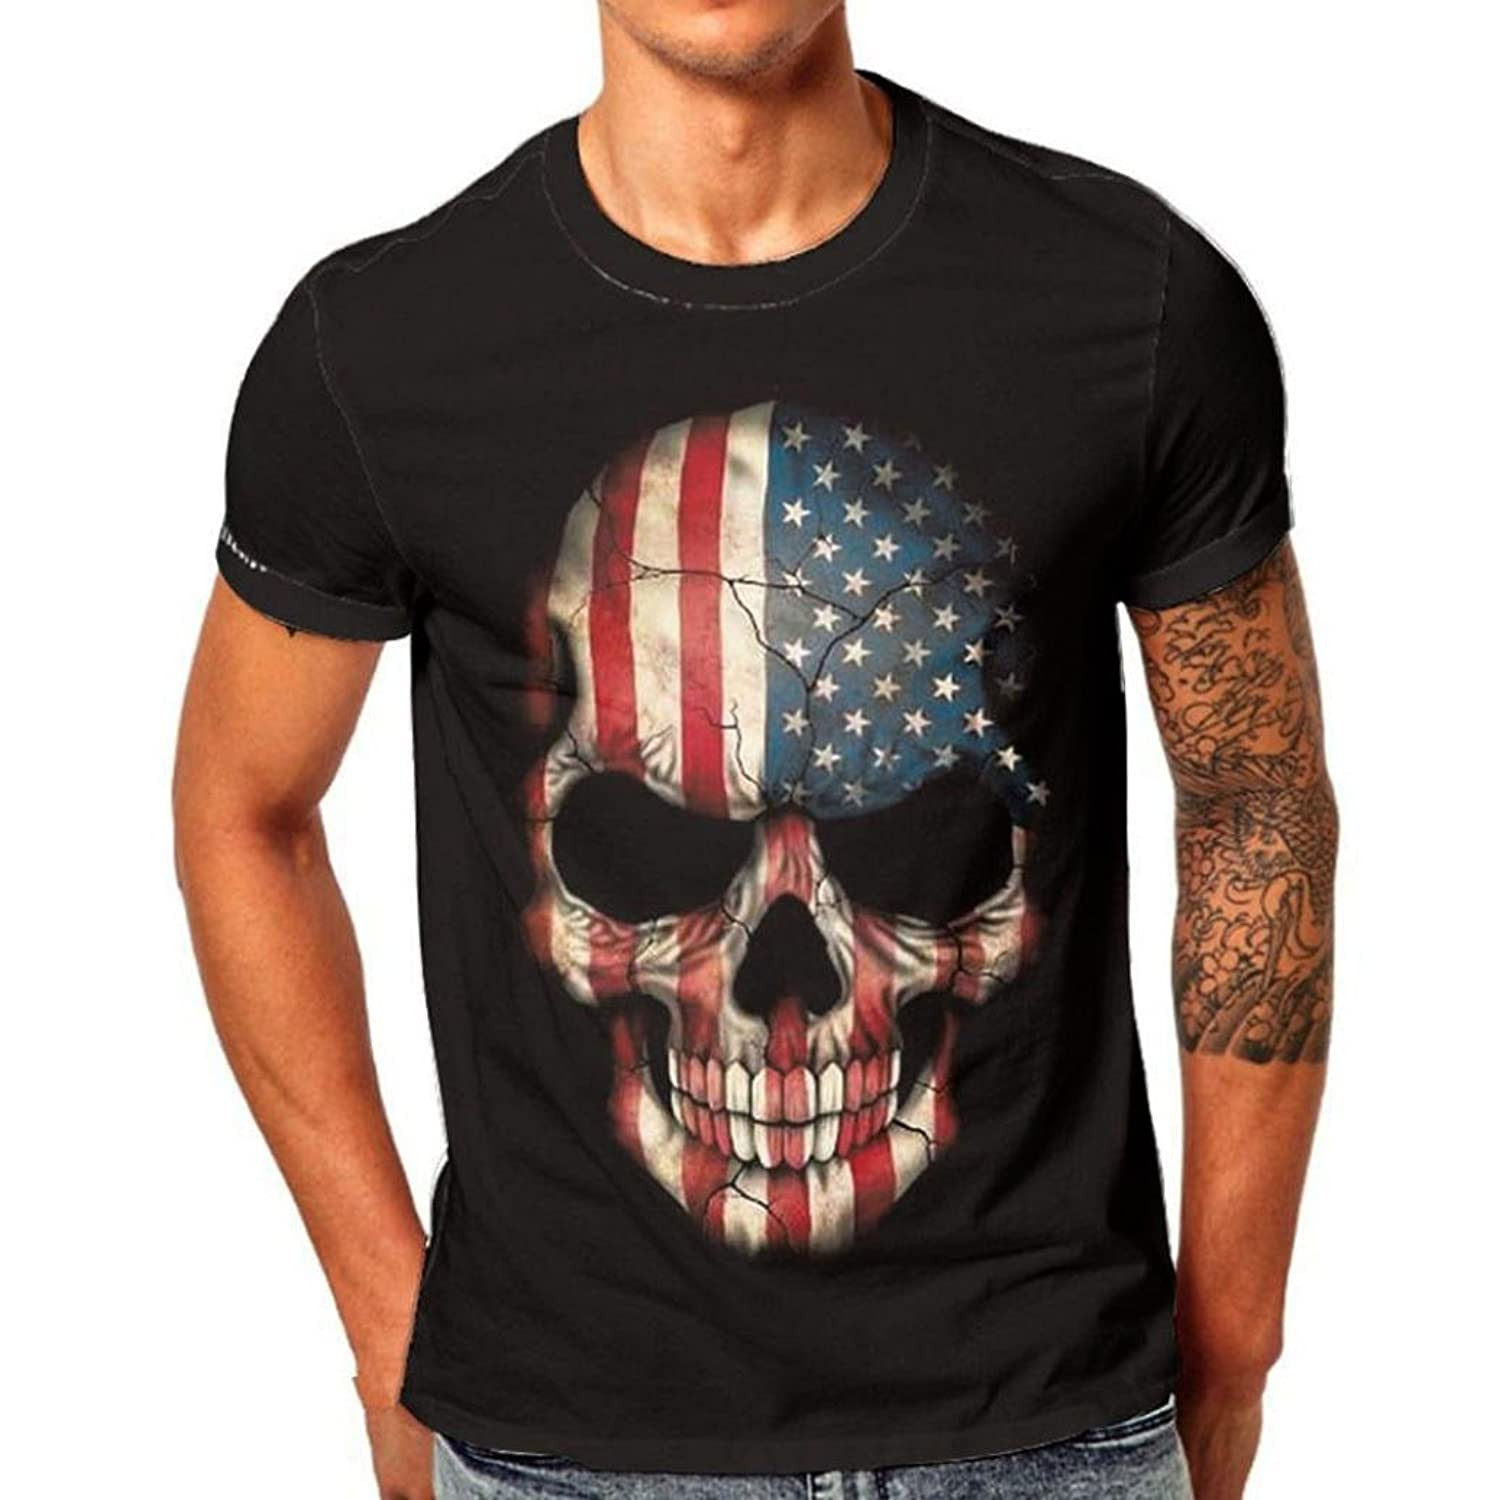 72cc358e7 Material: Cotton **** Feature: Short Sleeve, Skull Print, American Flag  Style, Slim Fit, O-Neck ✪ Tips:Please do not refer to the above size chart  provided ...